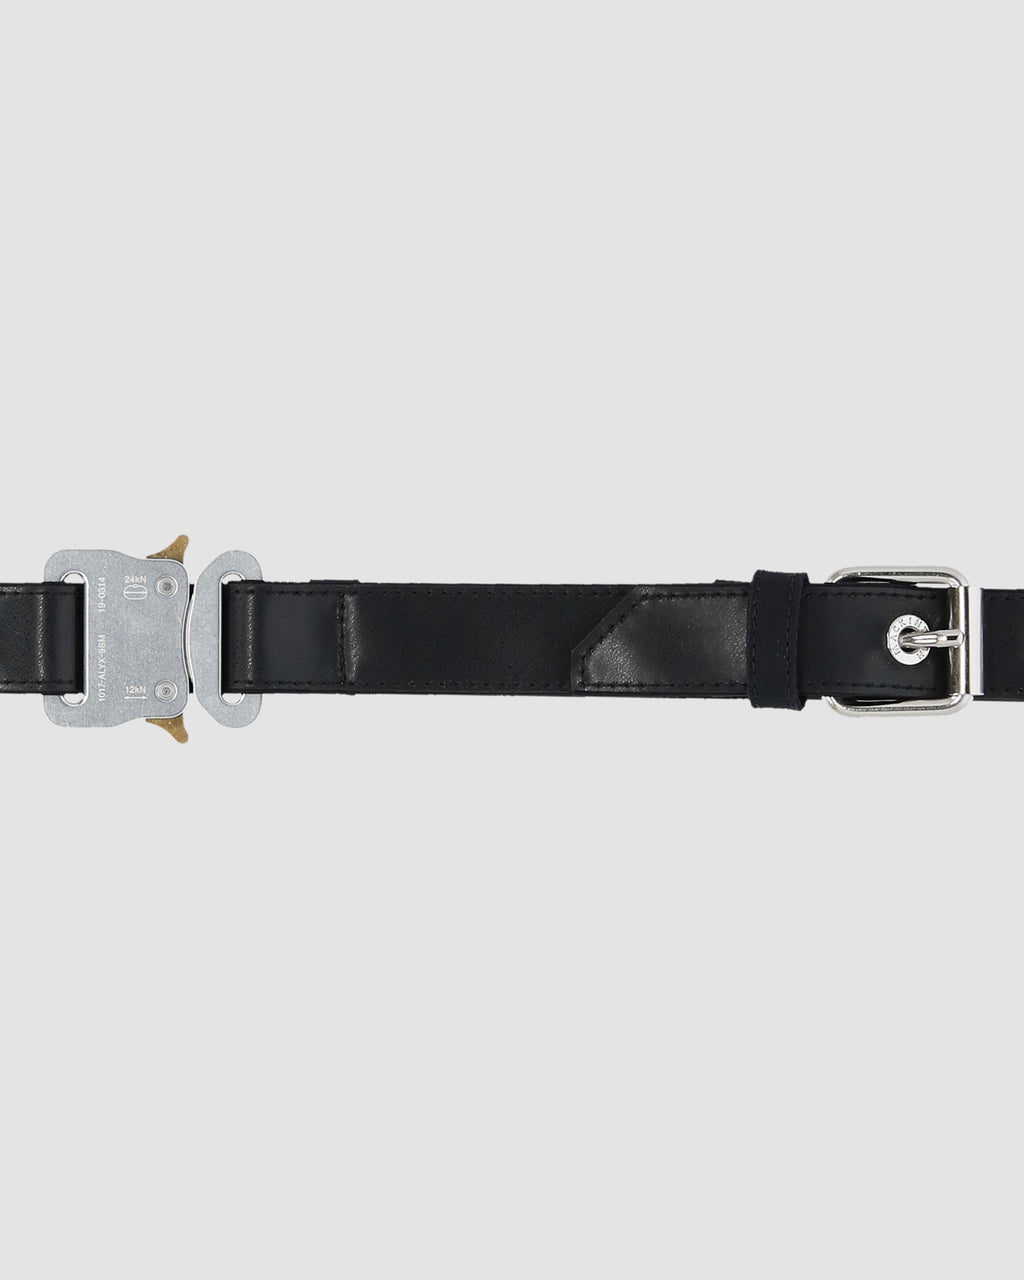 1017 ALYX 9SM | MACKINTOSH BELT | Belt | BELTS, BLACK, Mackintosh, Man, S20, UNISEX, Woman